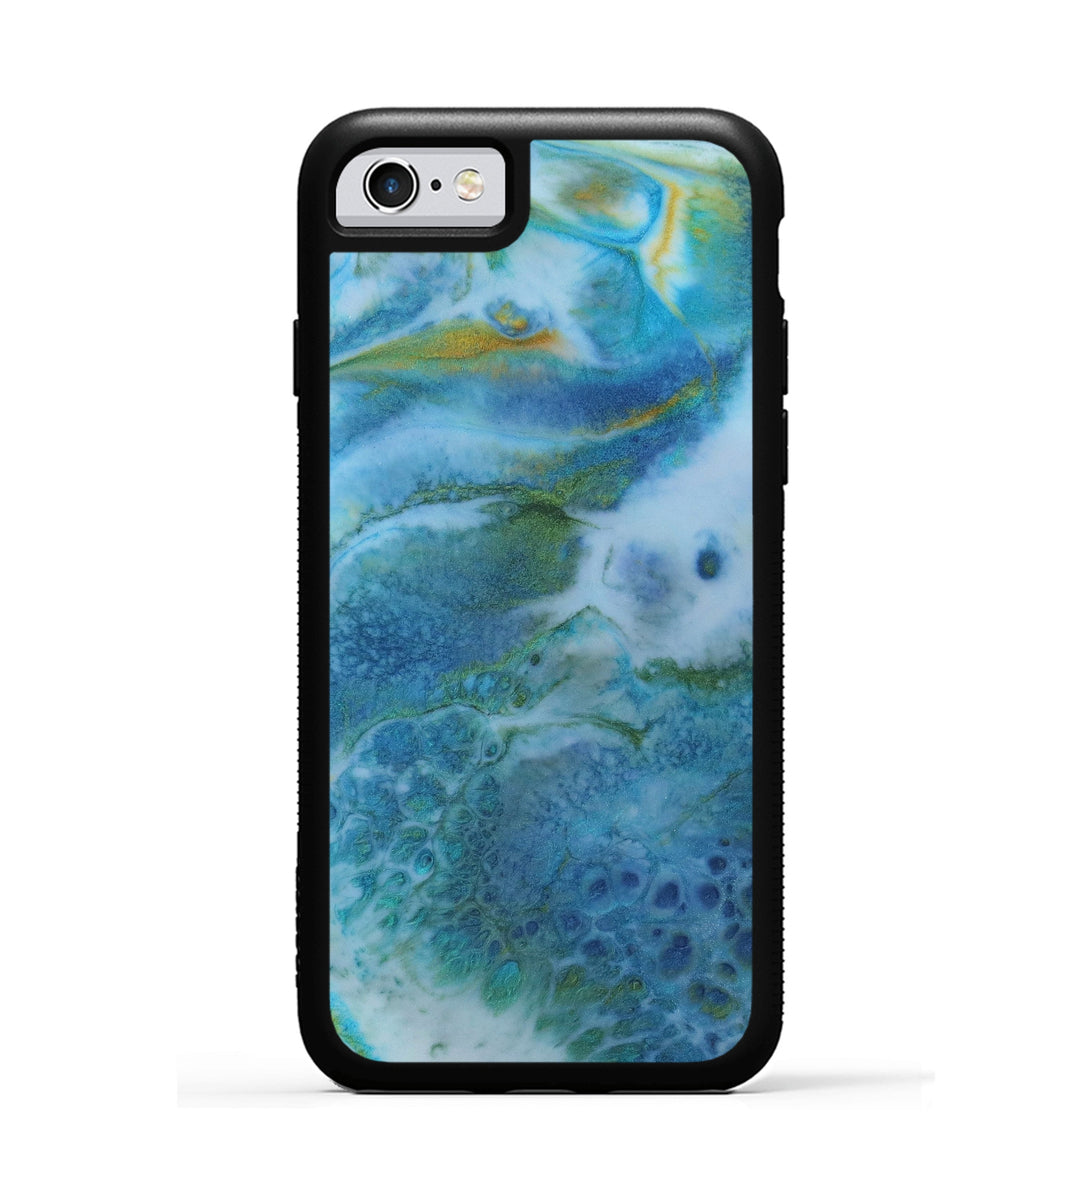 iPhone 6s ResinArt Phone Case - Marcellina (Teal & Gold, 347562)